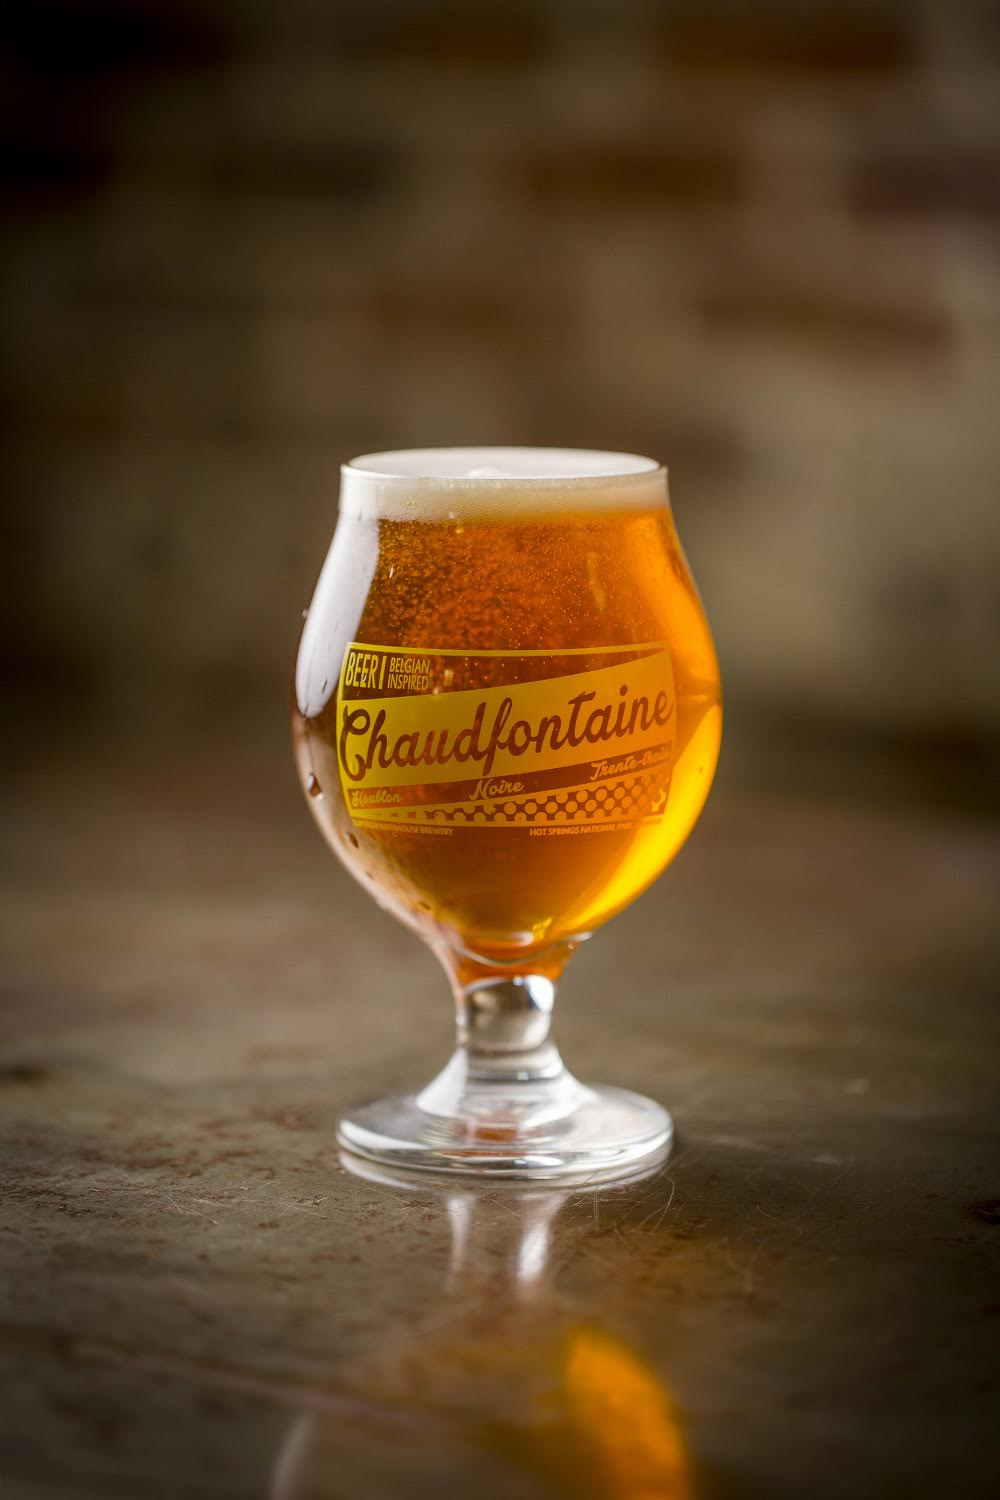 Chaudfontaine Houblon - A Belgian-style Imperial IPA or if you prefer, a hopped Tripel.  Our Bagstone yeast (urportedly from the Orval brewery in Belgium) creates fruit and spice characteristics underneath an explosion of Chinook hops